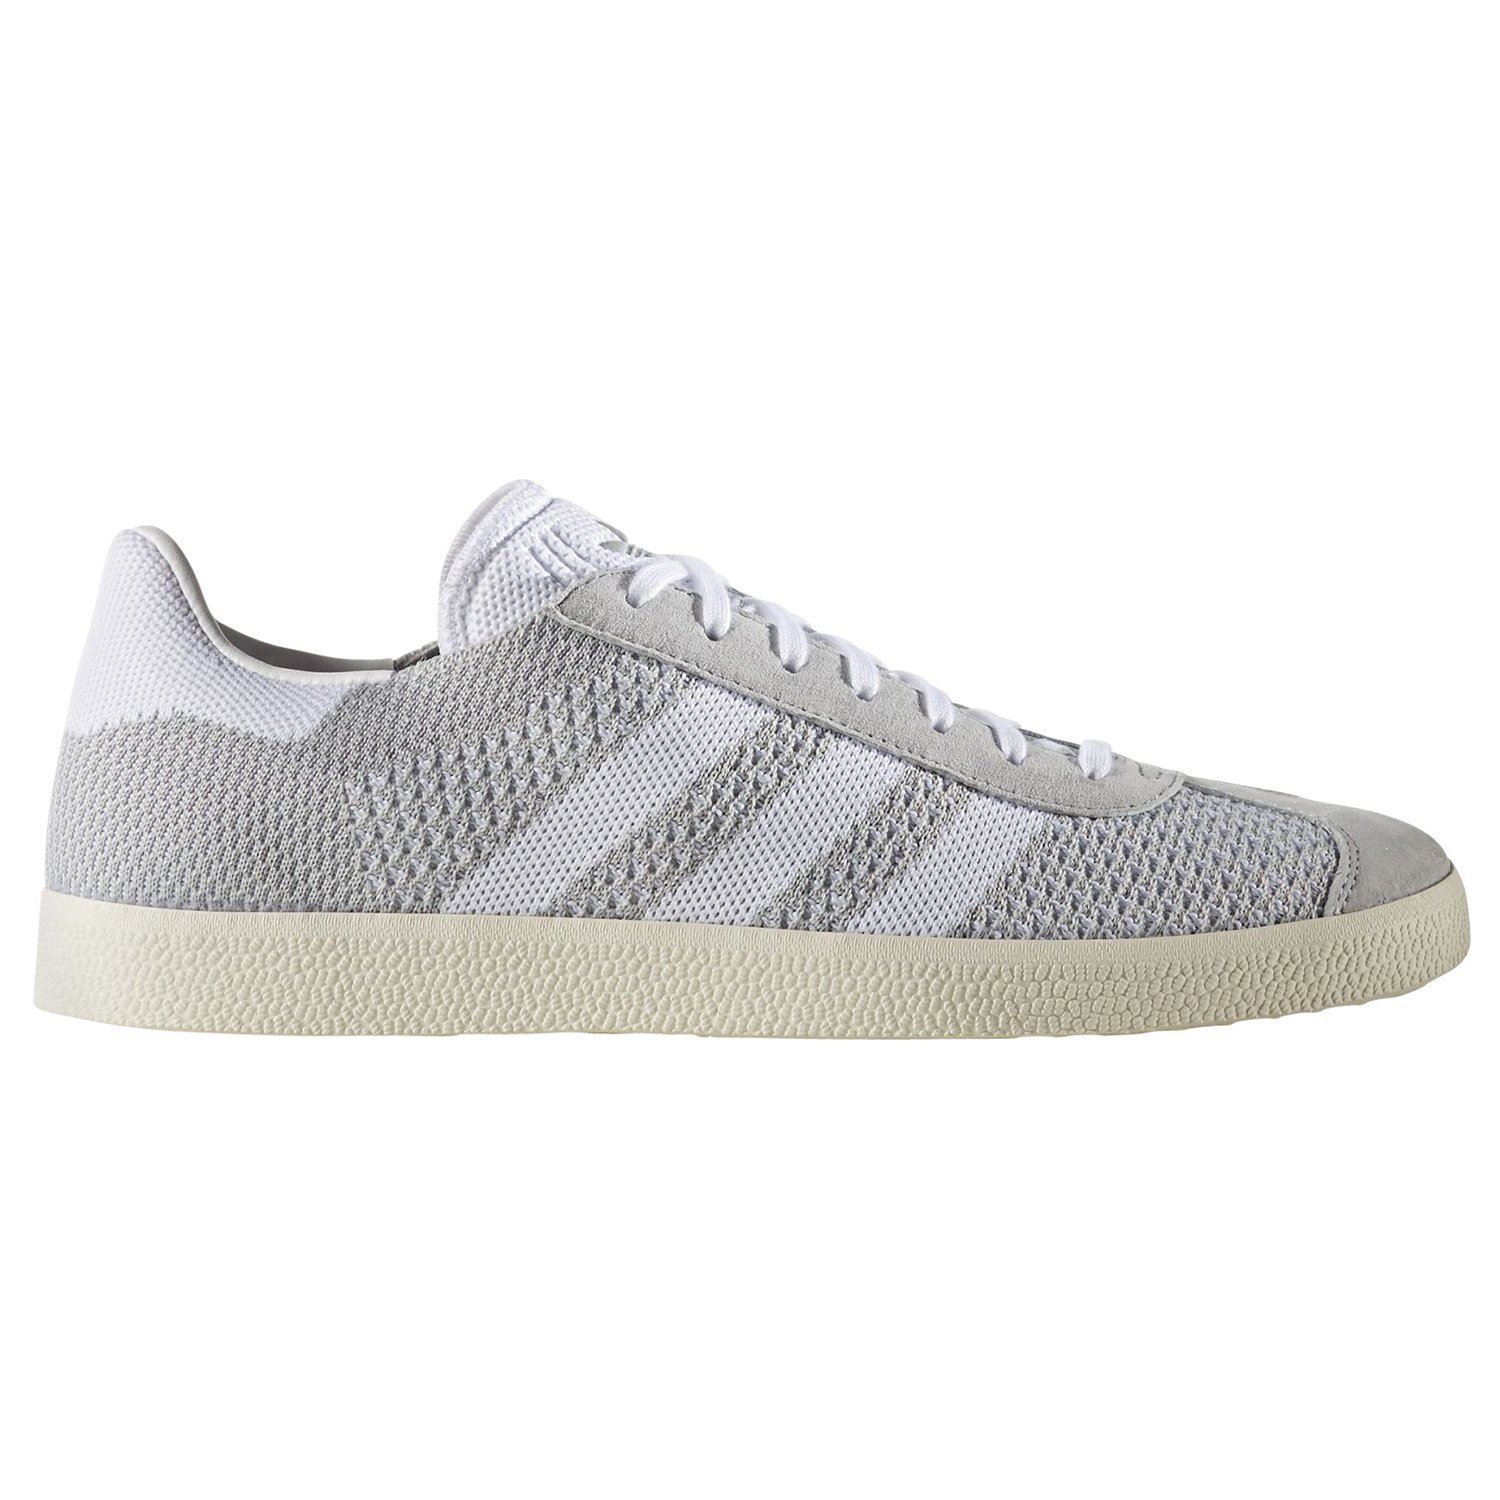 low cost 7053c 0a5a8 Details about adidas ORIGINALS GAZELLE PK TRAINERS GREY trainers SNEAKERS  SHOES PRIME KNIT